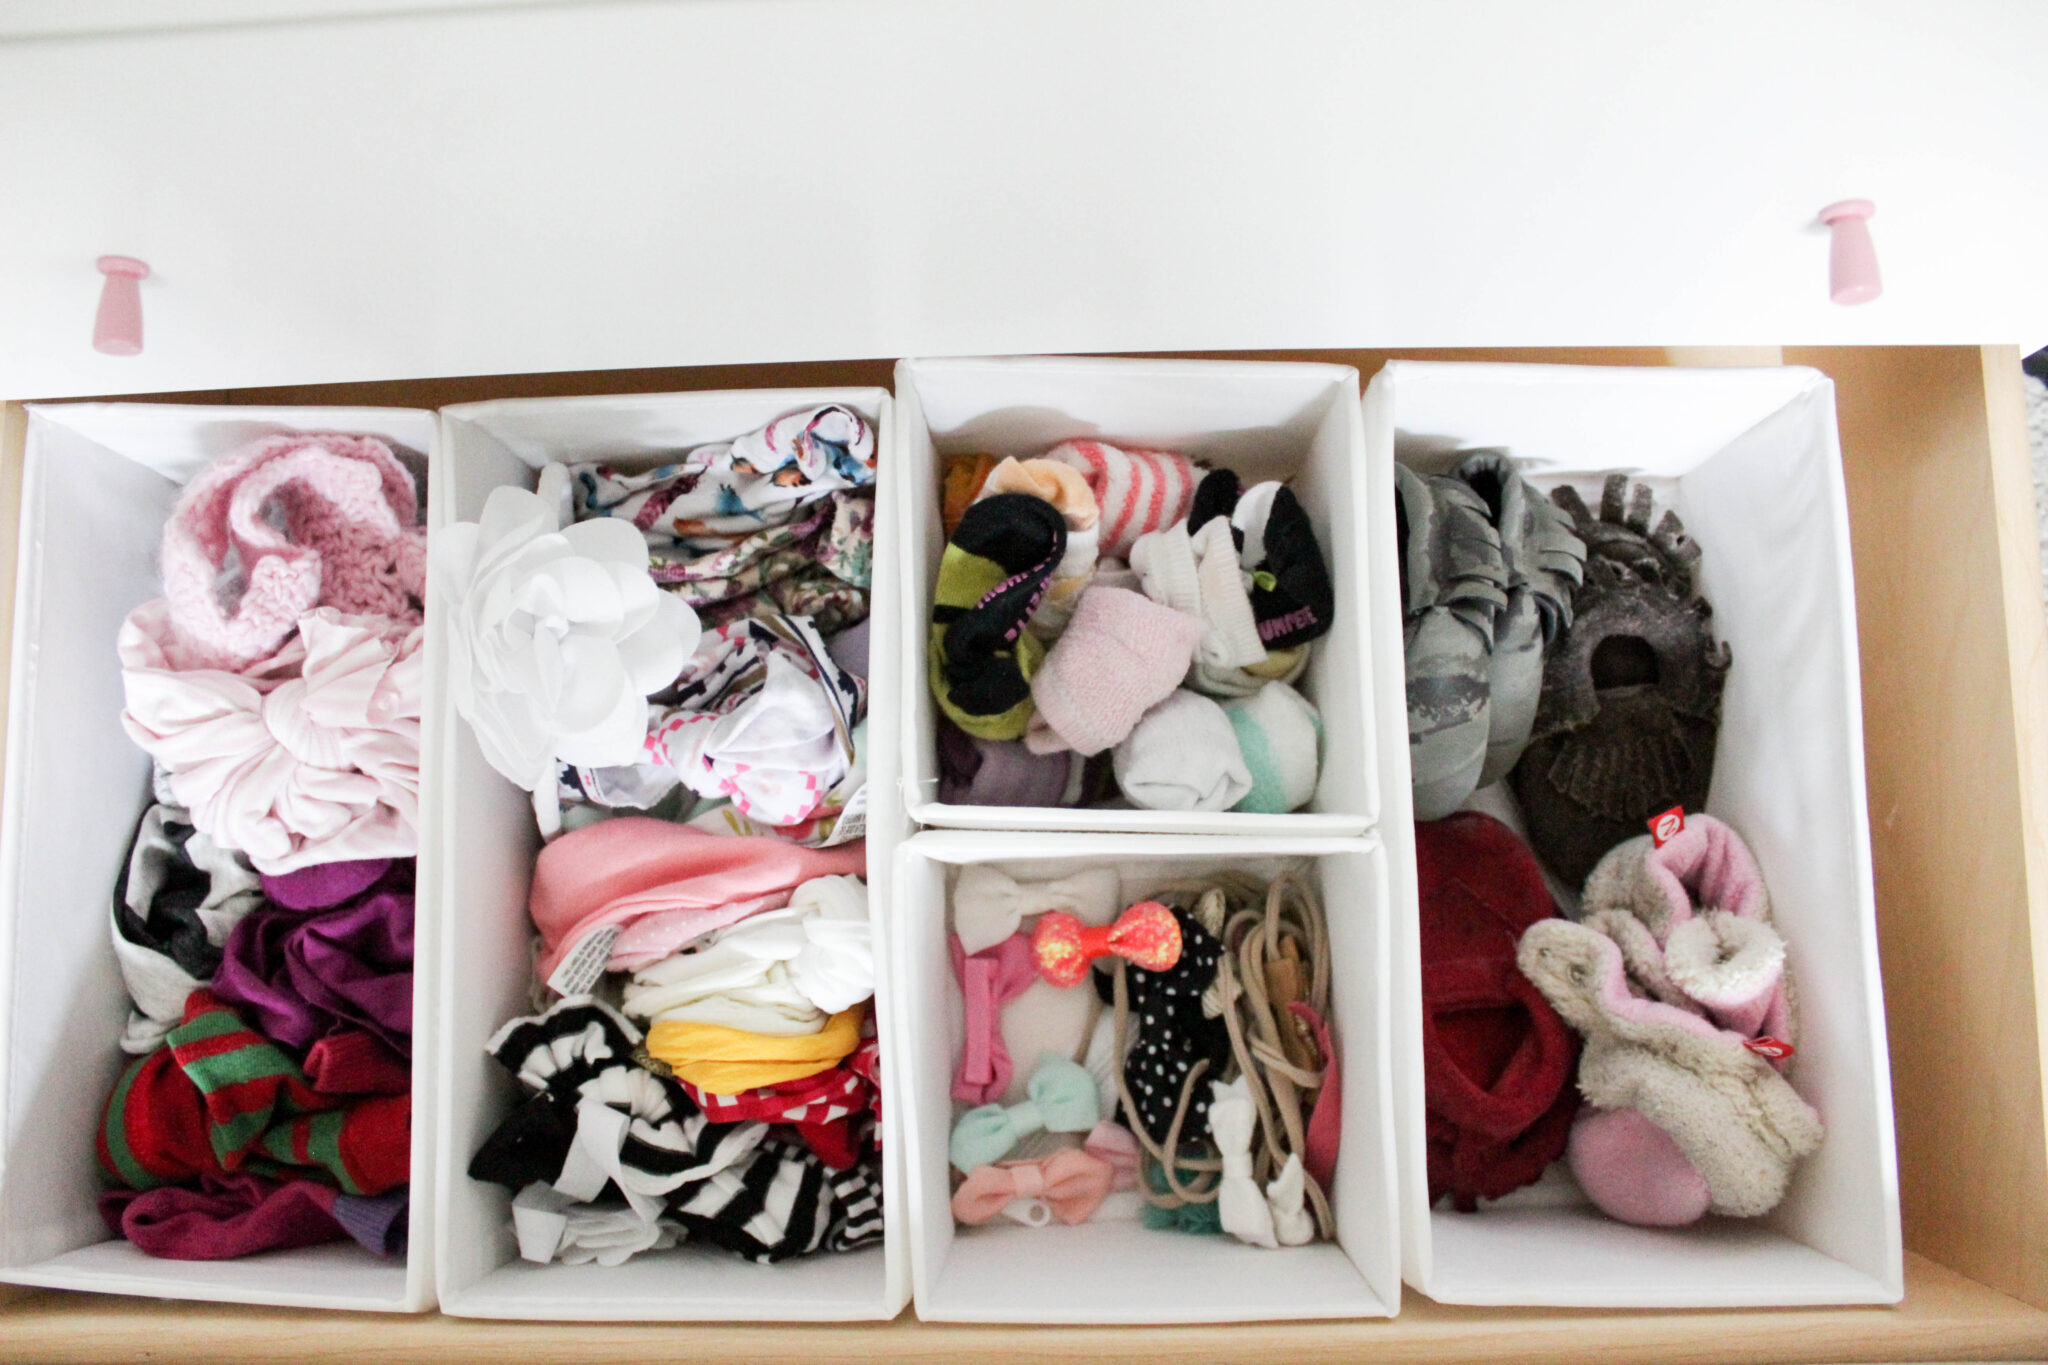 organizing baby's closet - dresser drawers with socks, shoes, bows